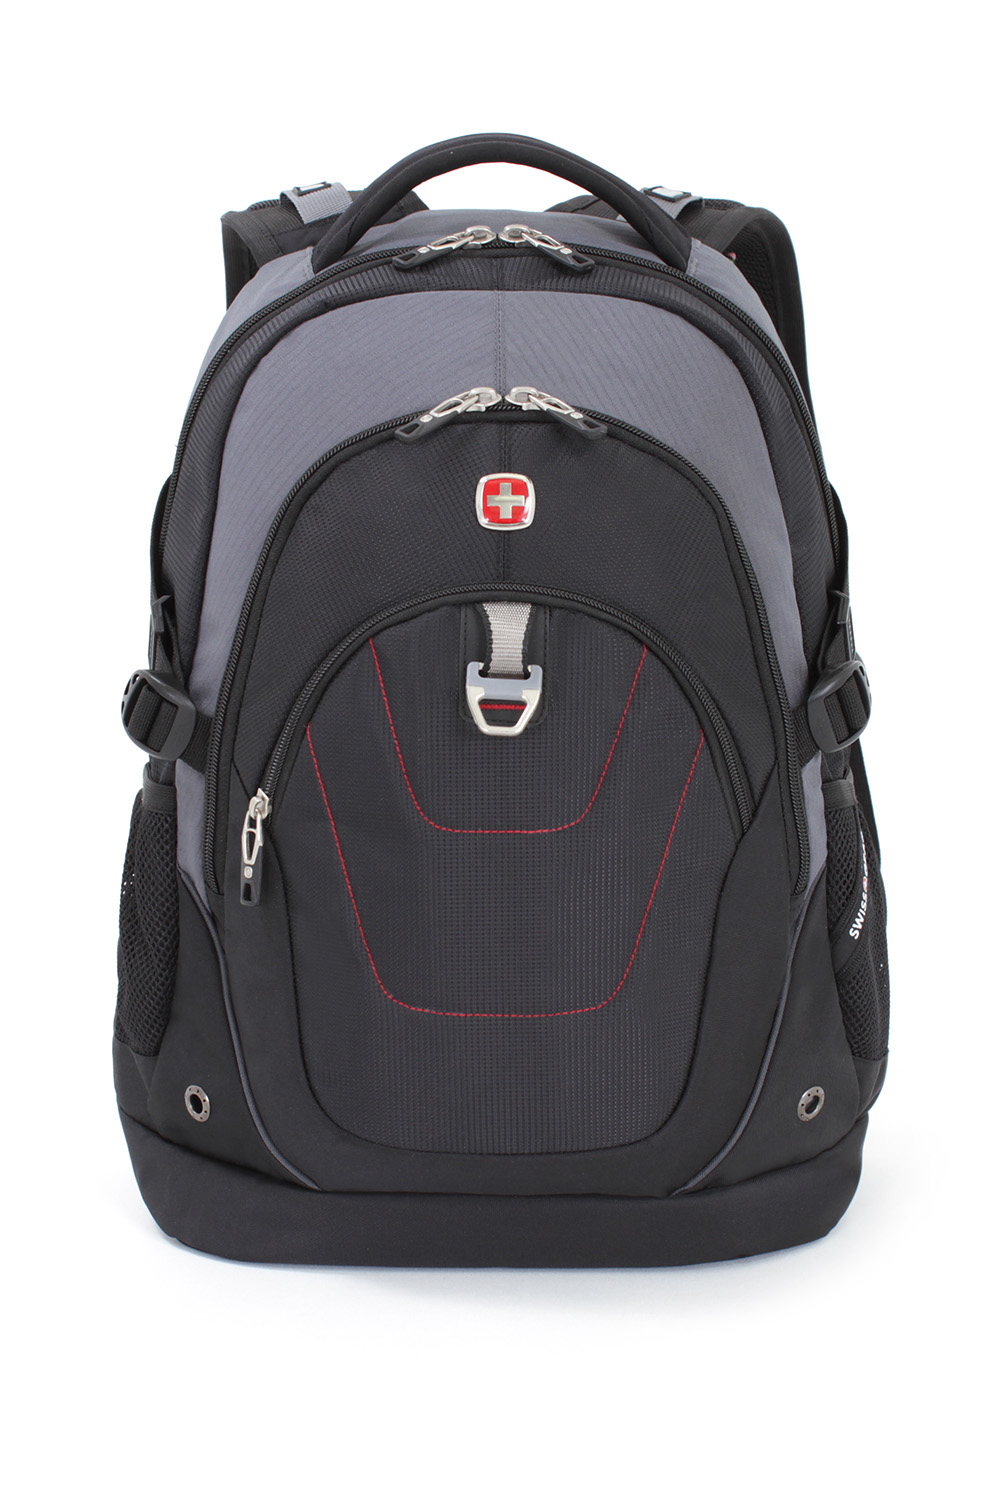 SWISSGEAR 3255 ScanSmart TSA Laptop Backpack